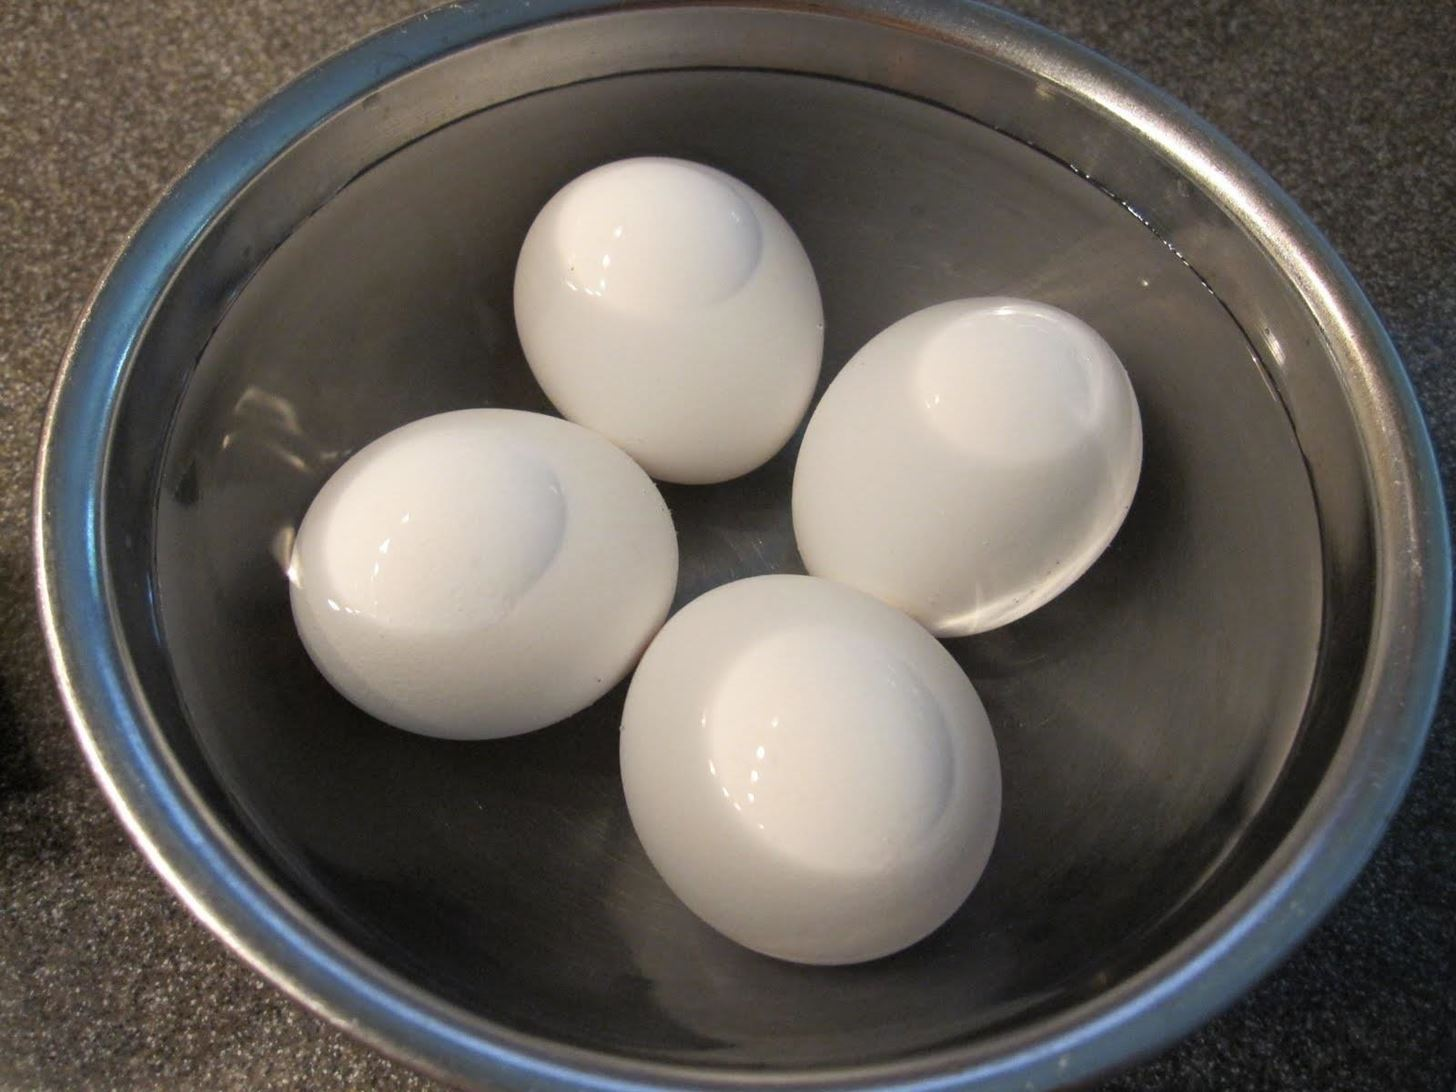 How to Make Amazing Hard-Boiled Eggs That Are Easy to Peel